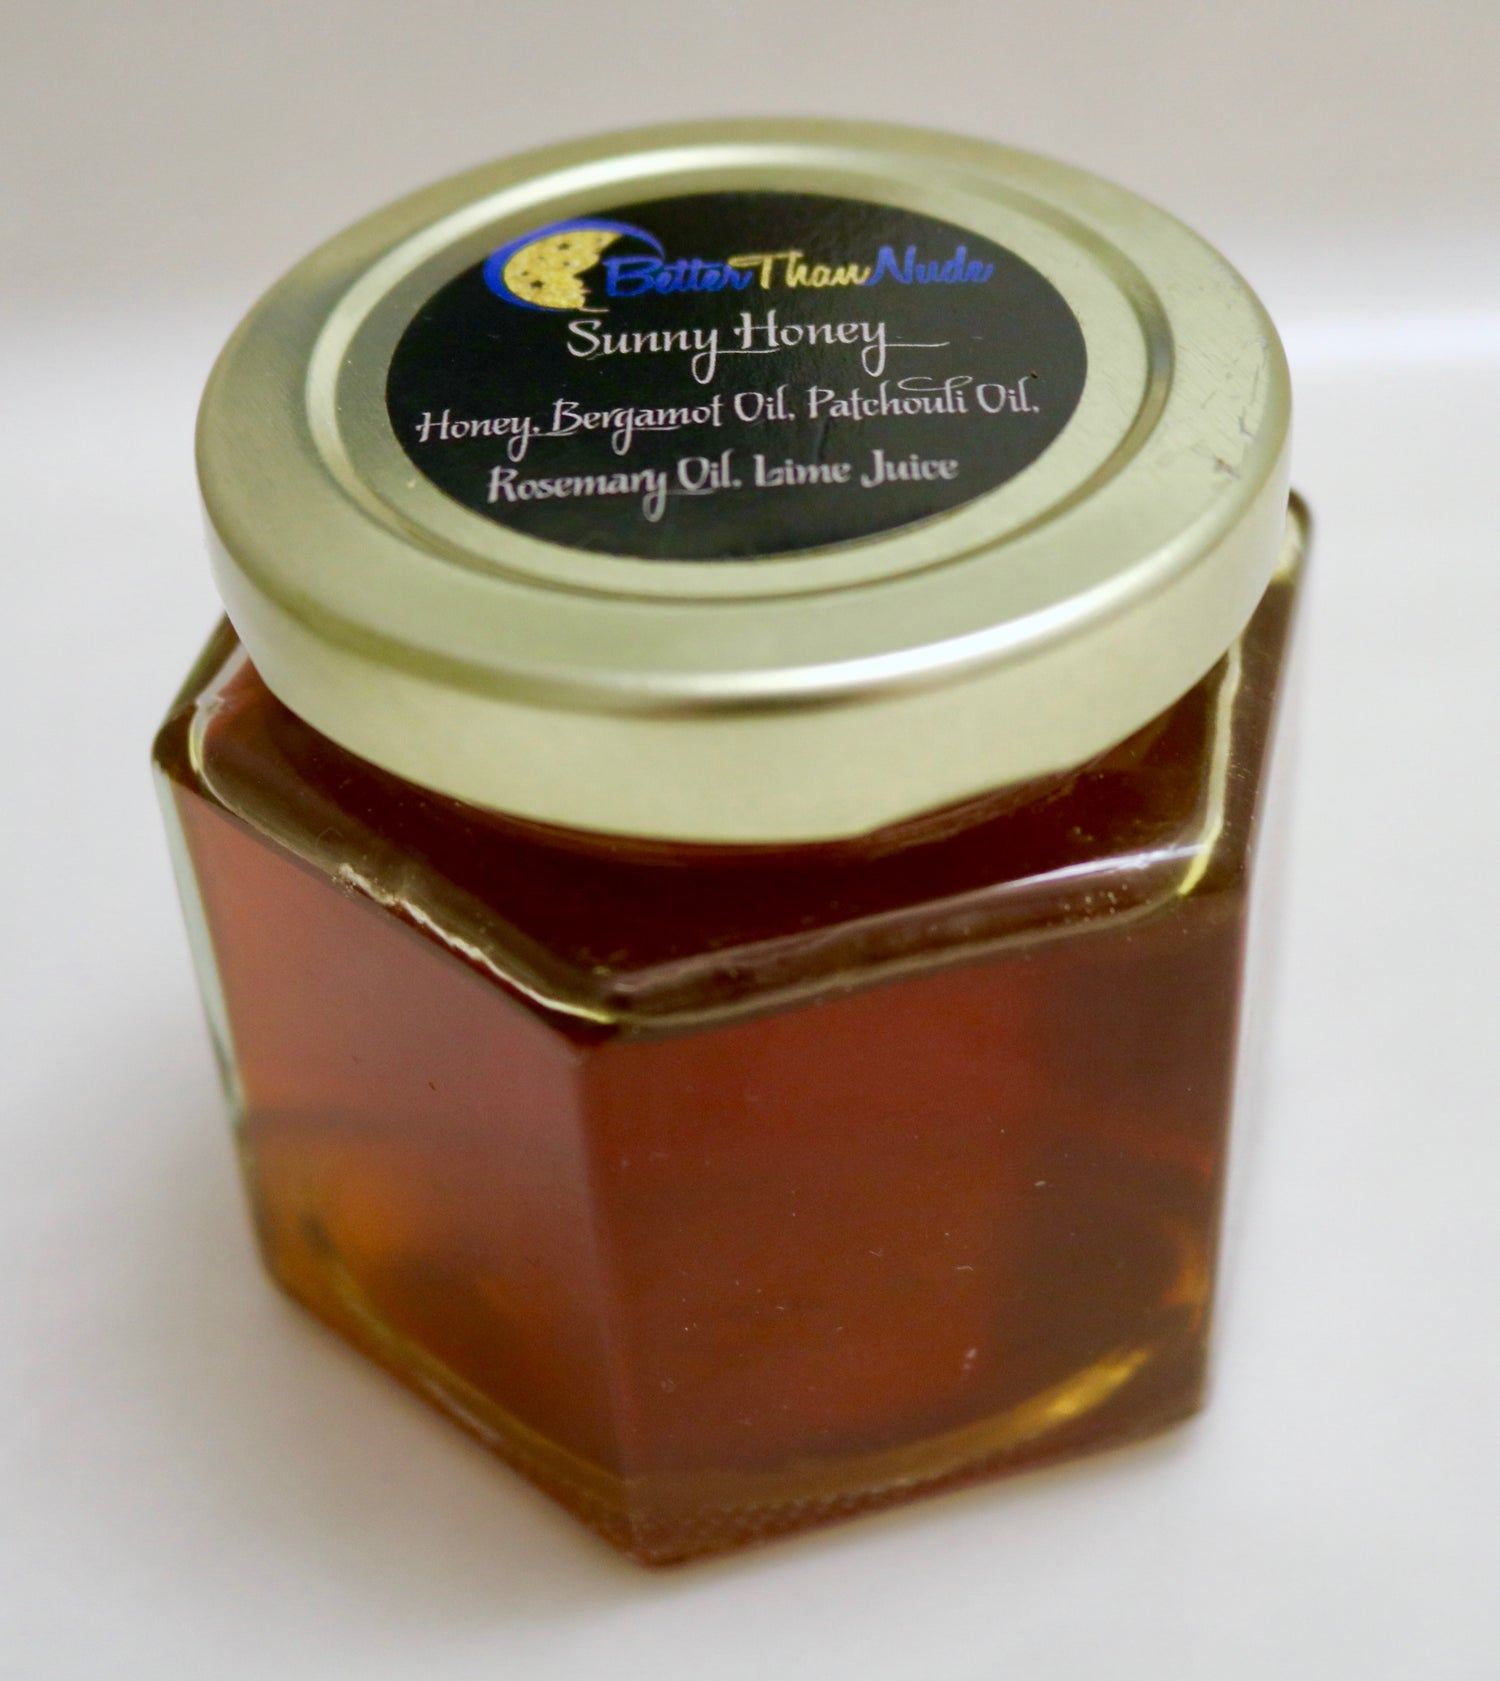 Image of Sunny Honey